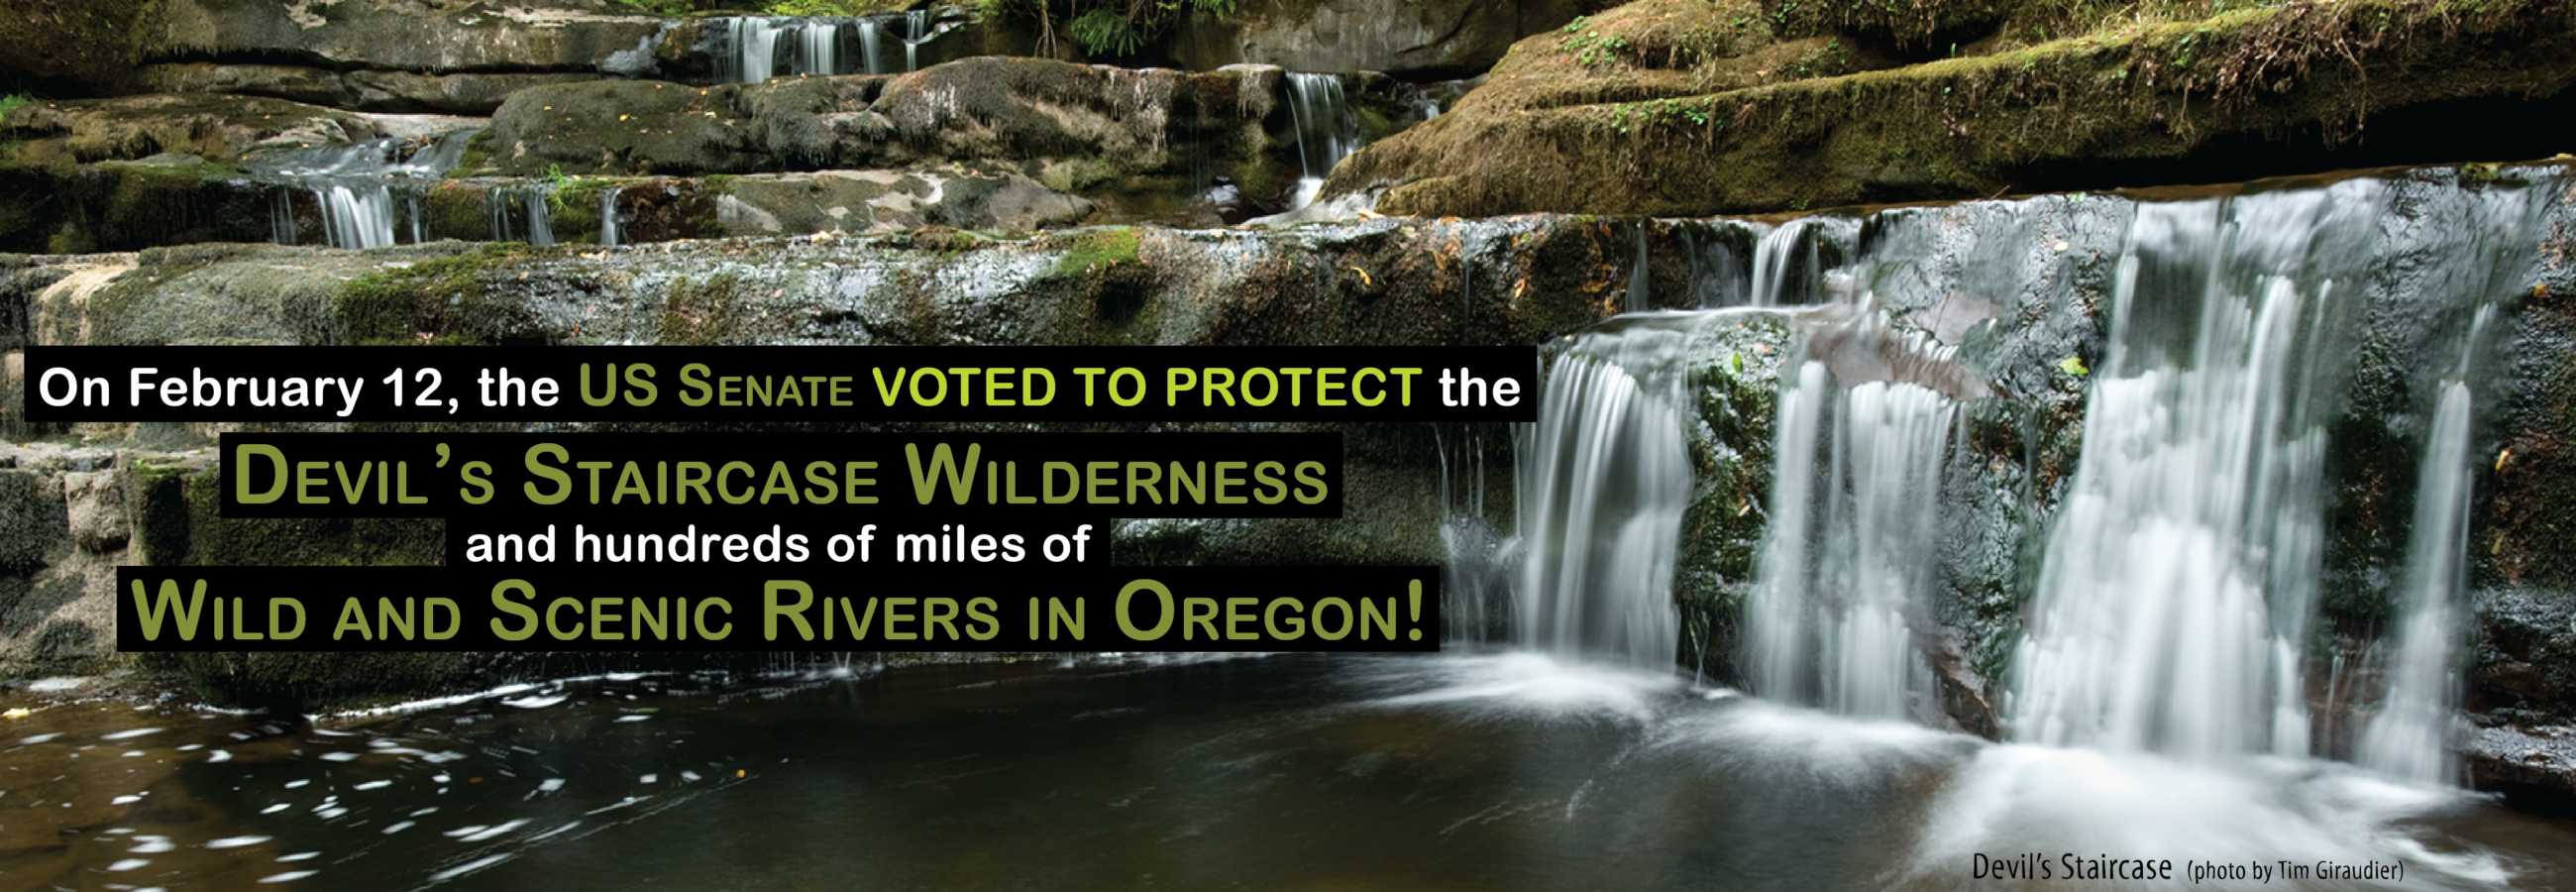 On February 12, the US Senate voted to protect the Devil's Staircase Wilderness and hundreds of miles of Wild and Scenic Rivers in Oregon! (photo by Tim Giraudier)